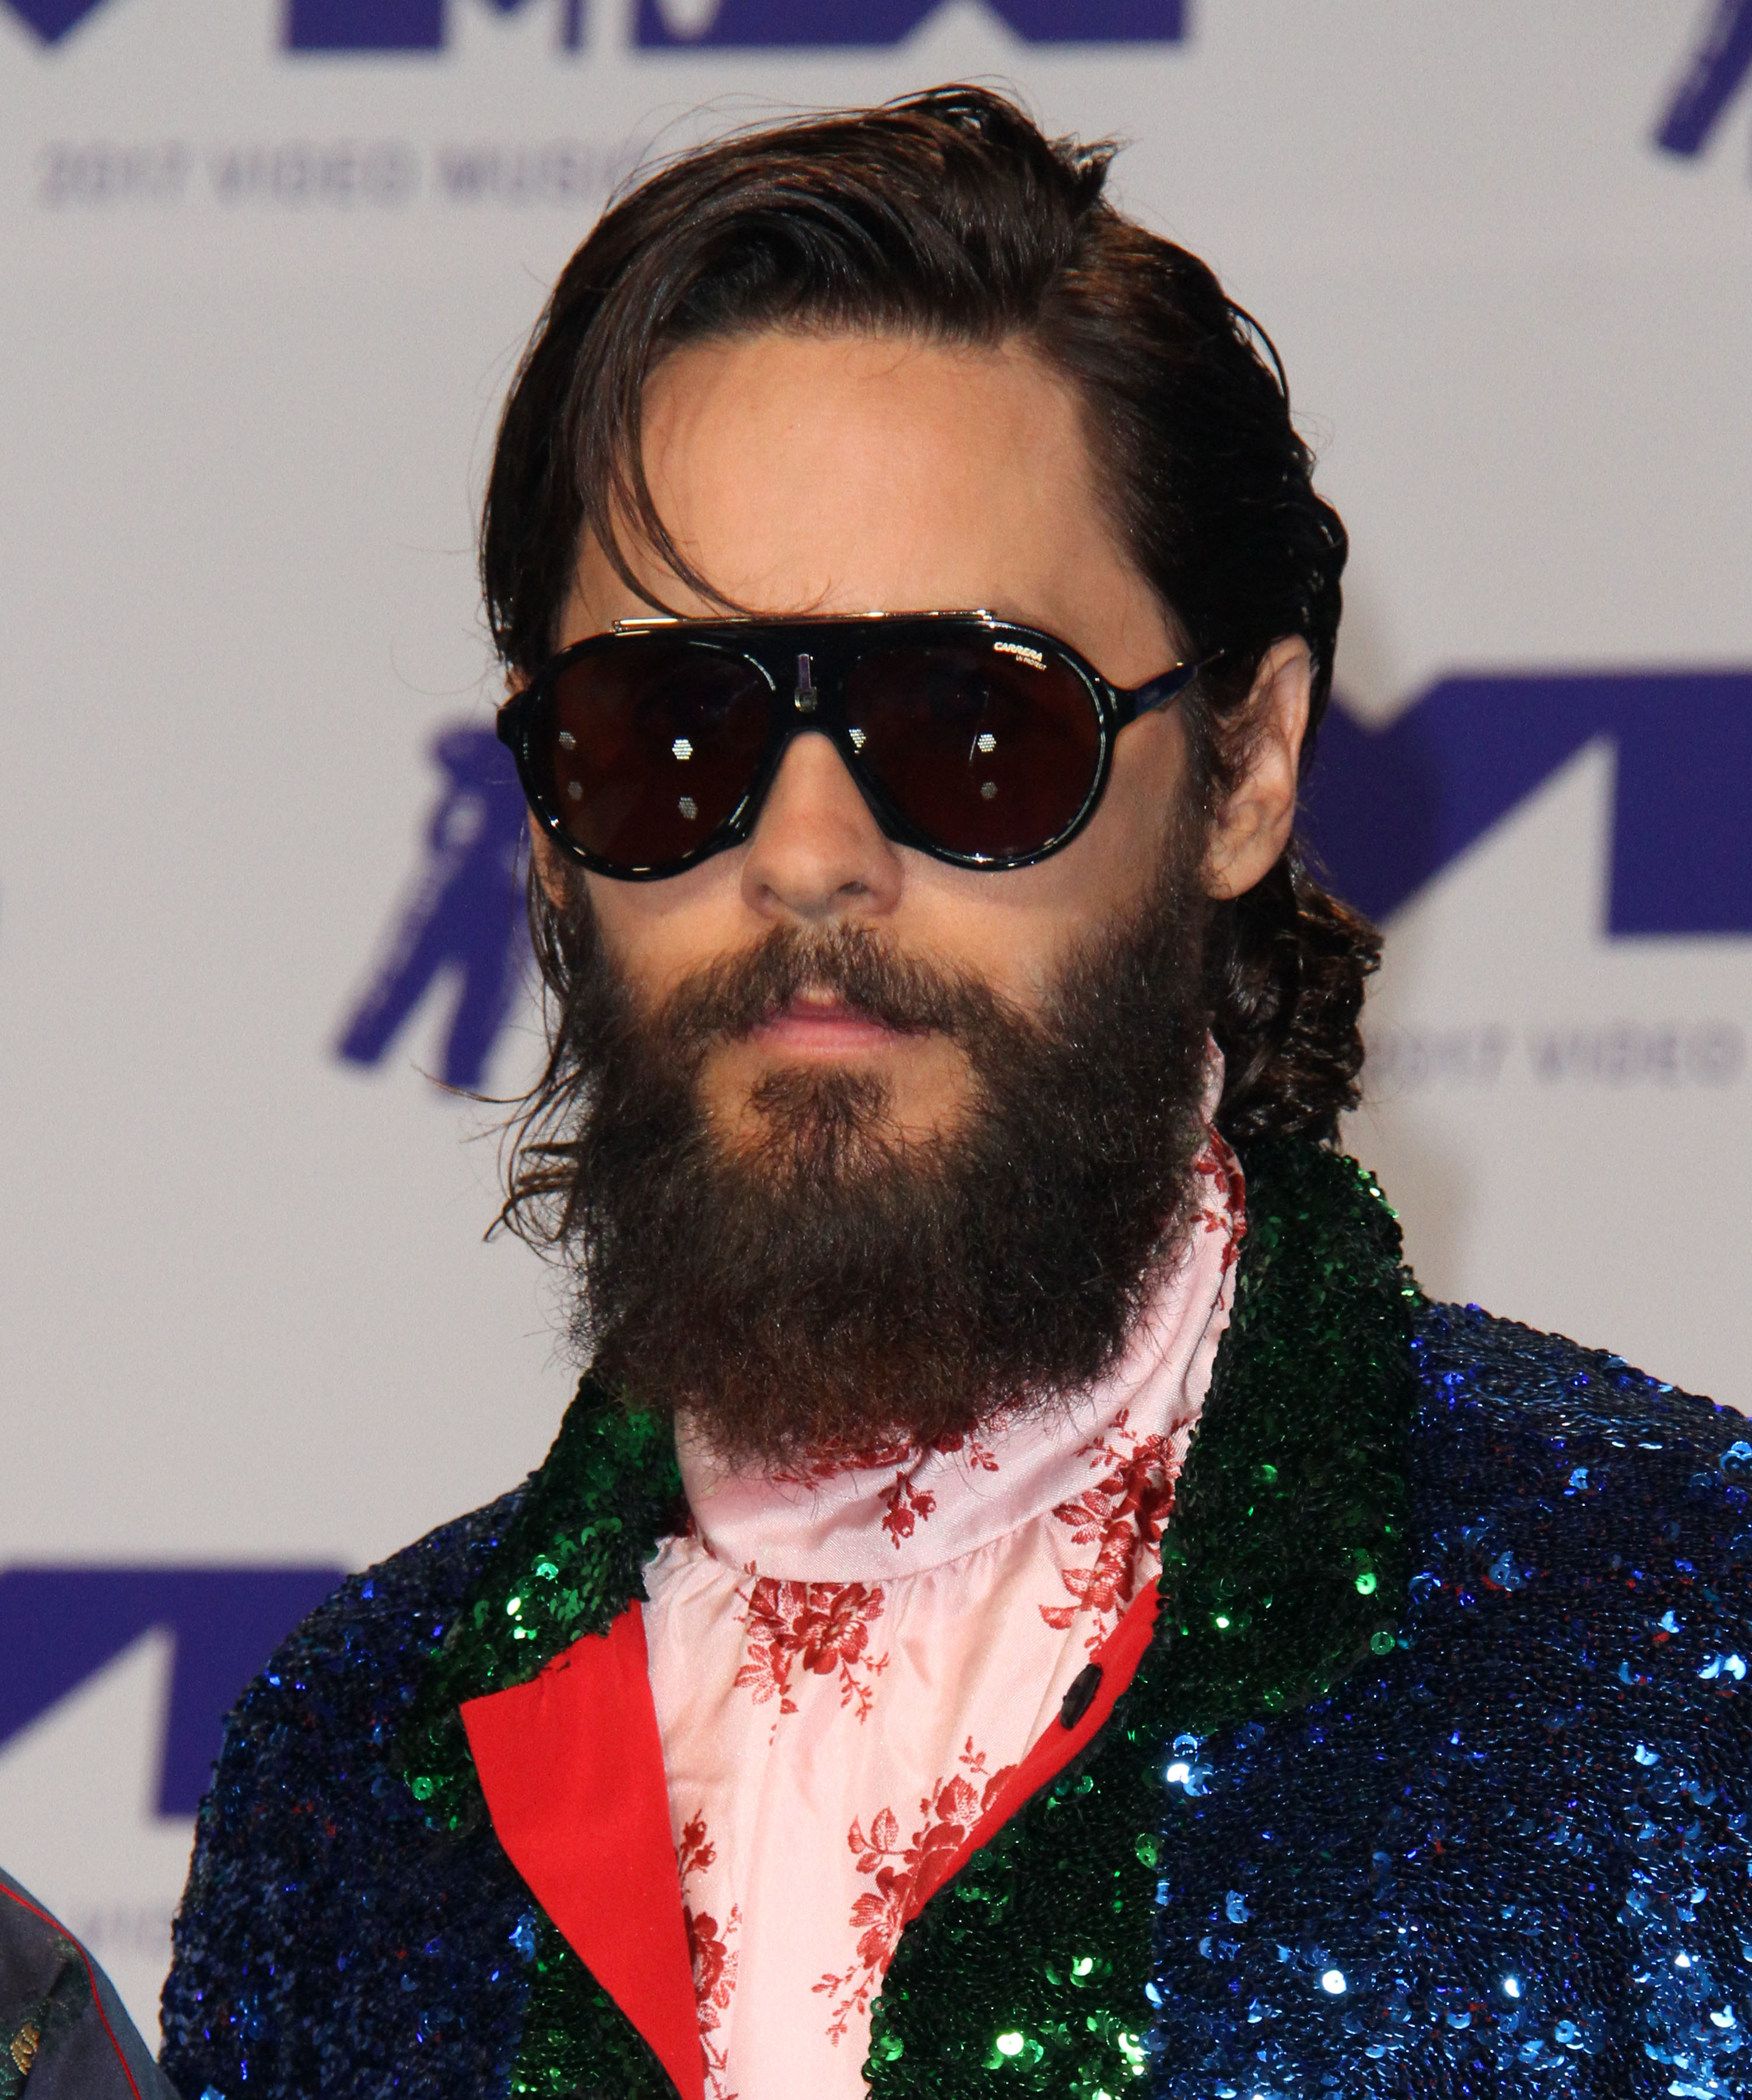 MTV Video Music Awards (VMA) 2017 Arrivals held at the Forum in Inglewood, California.  Featuring: Jared Leto Where: Los Angeles, California, United States When: 26 Aug 2017 Credit: Adriana M. Barraza/WENN.com